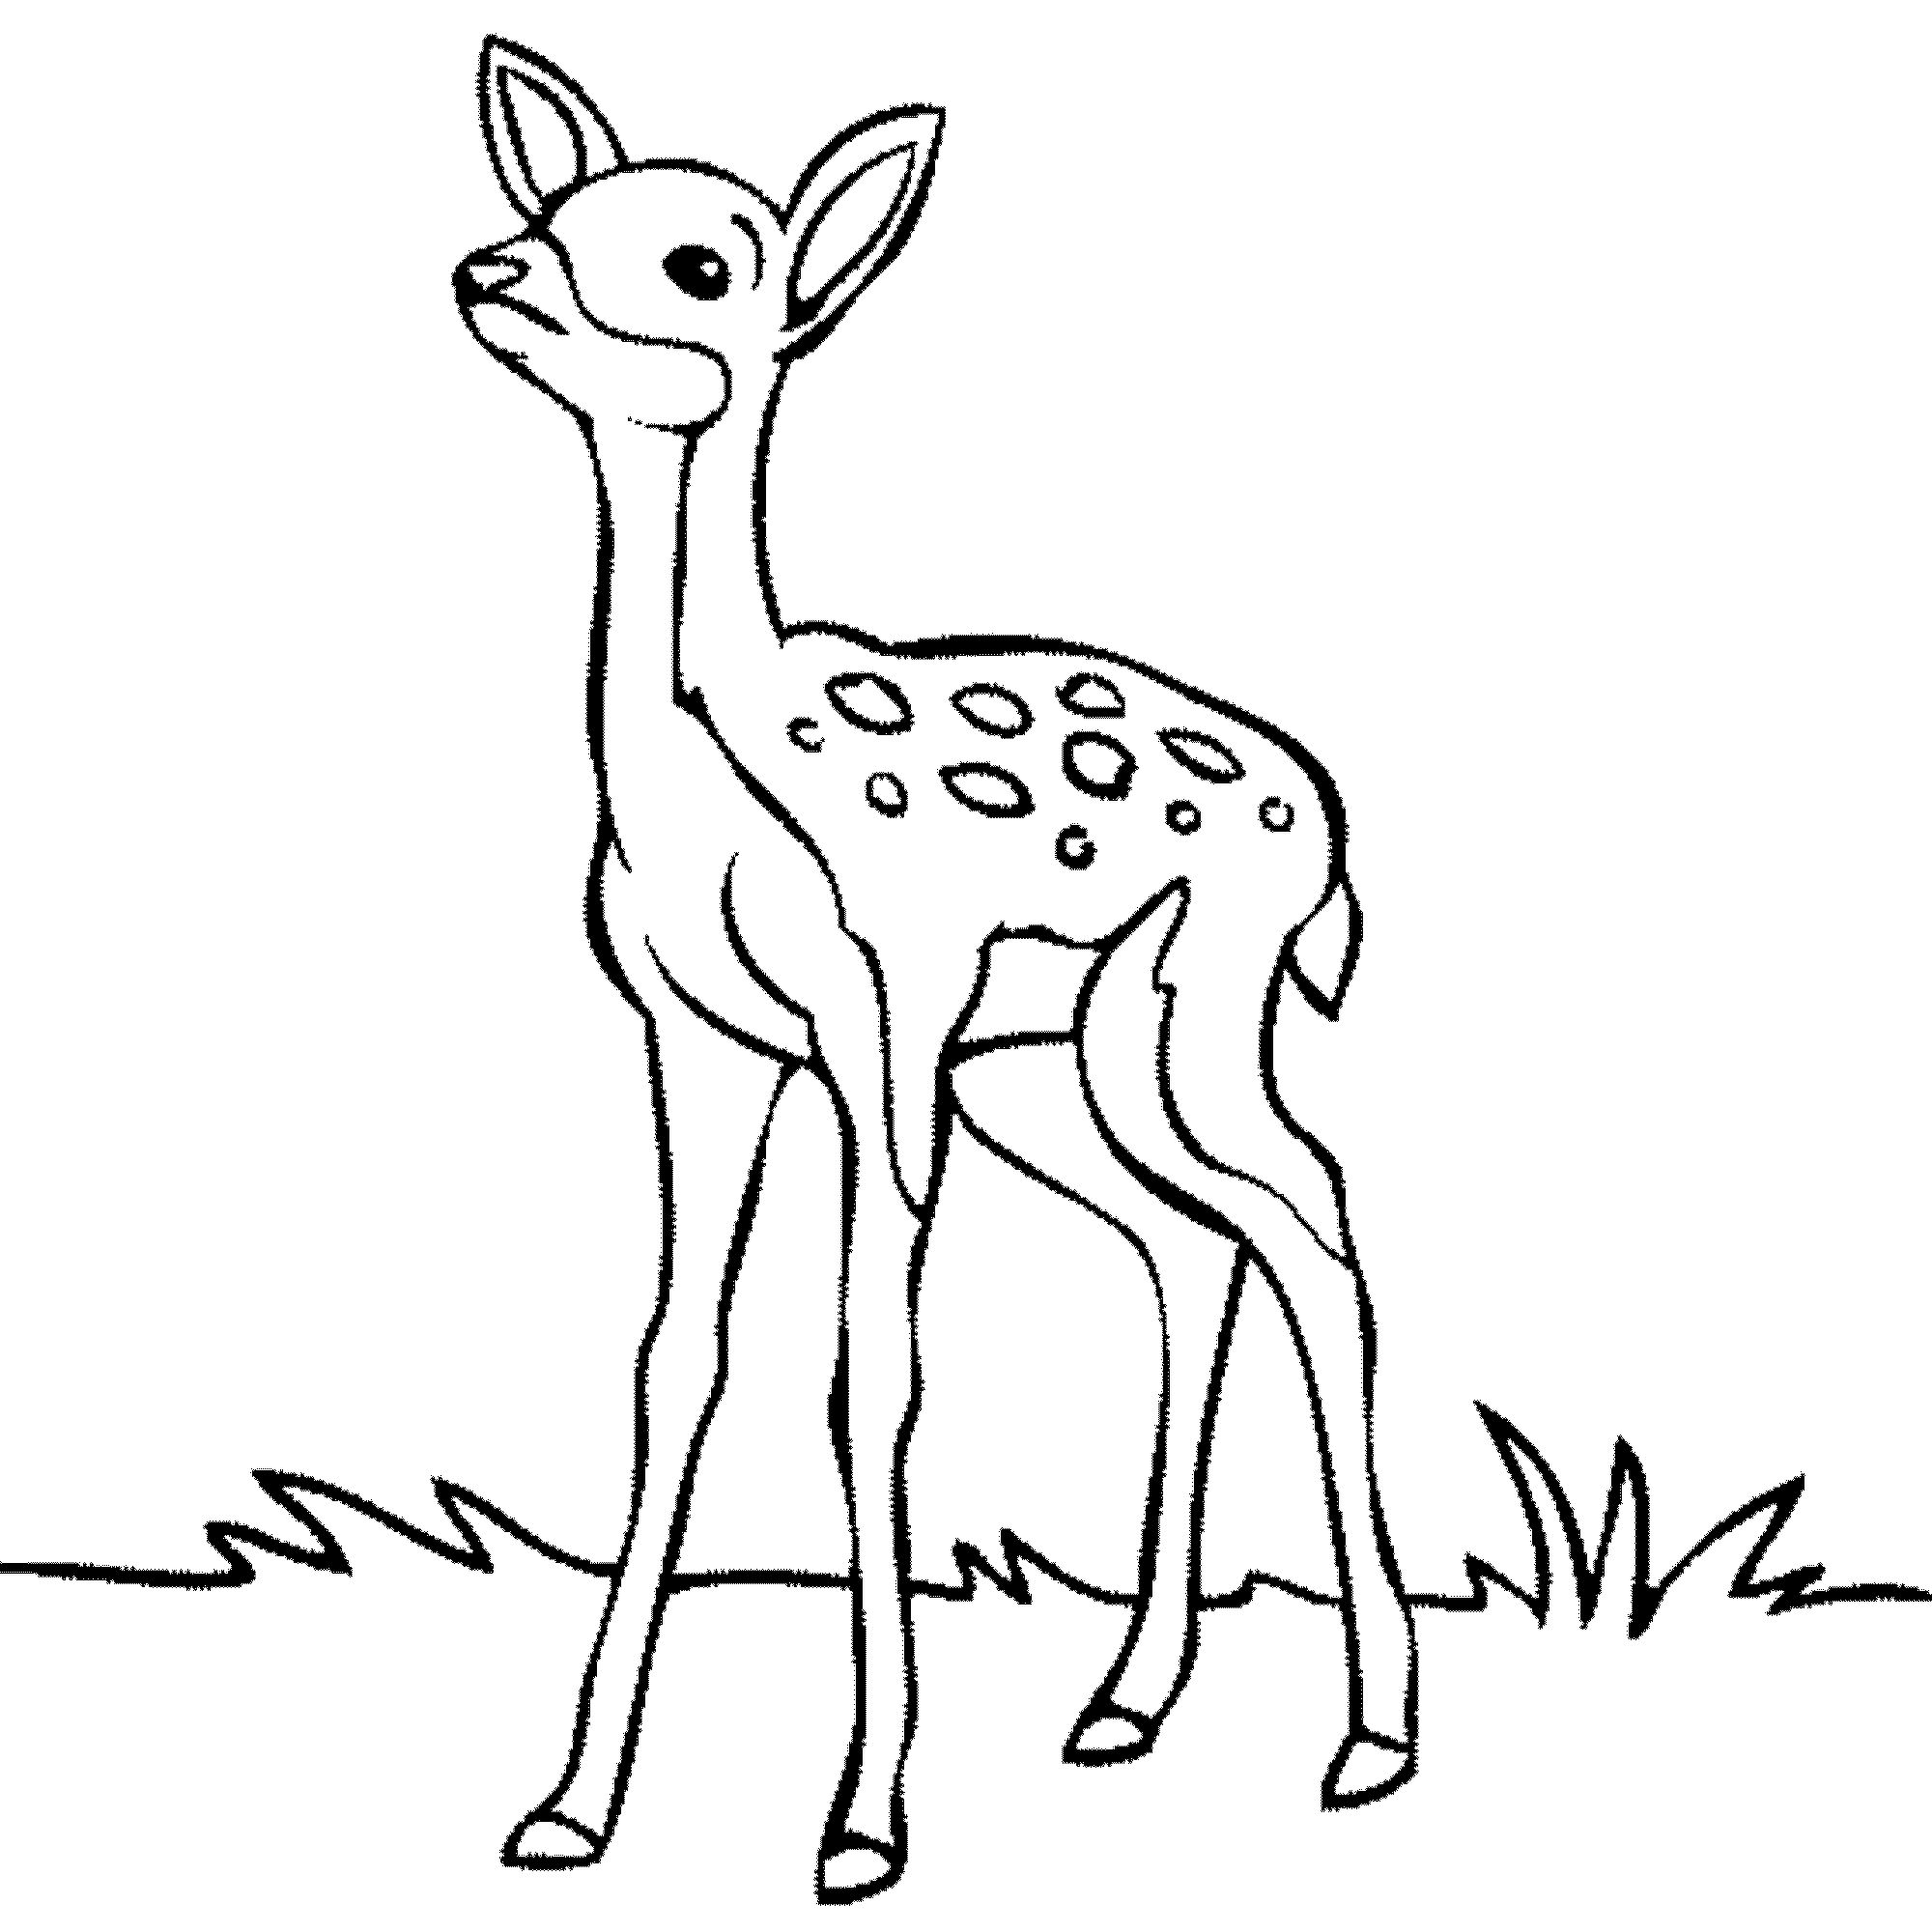 Black and white deer clipart banner library library Free black and white deer clipart 3 » Clipart Portal banner library library